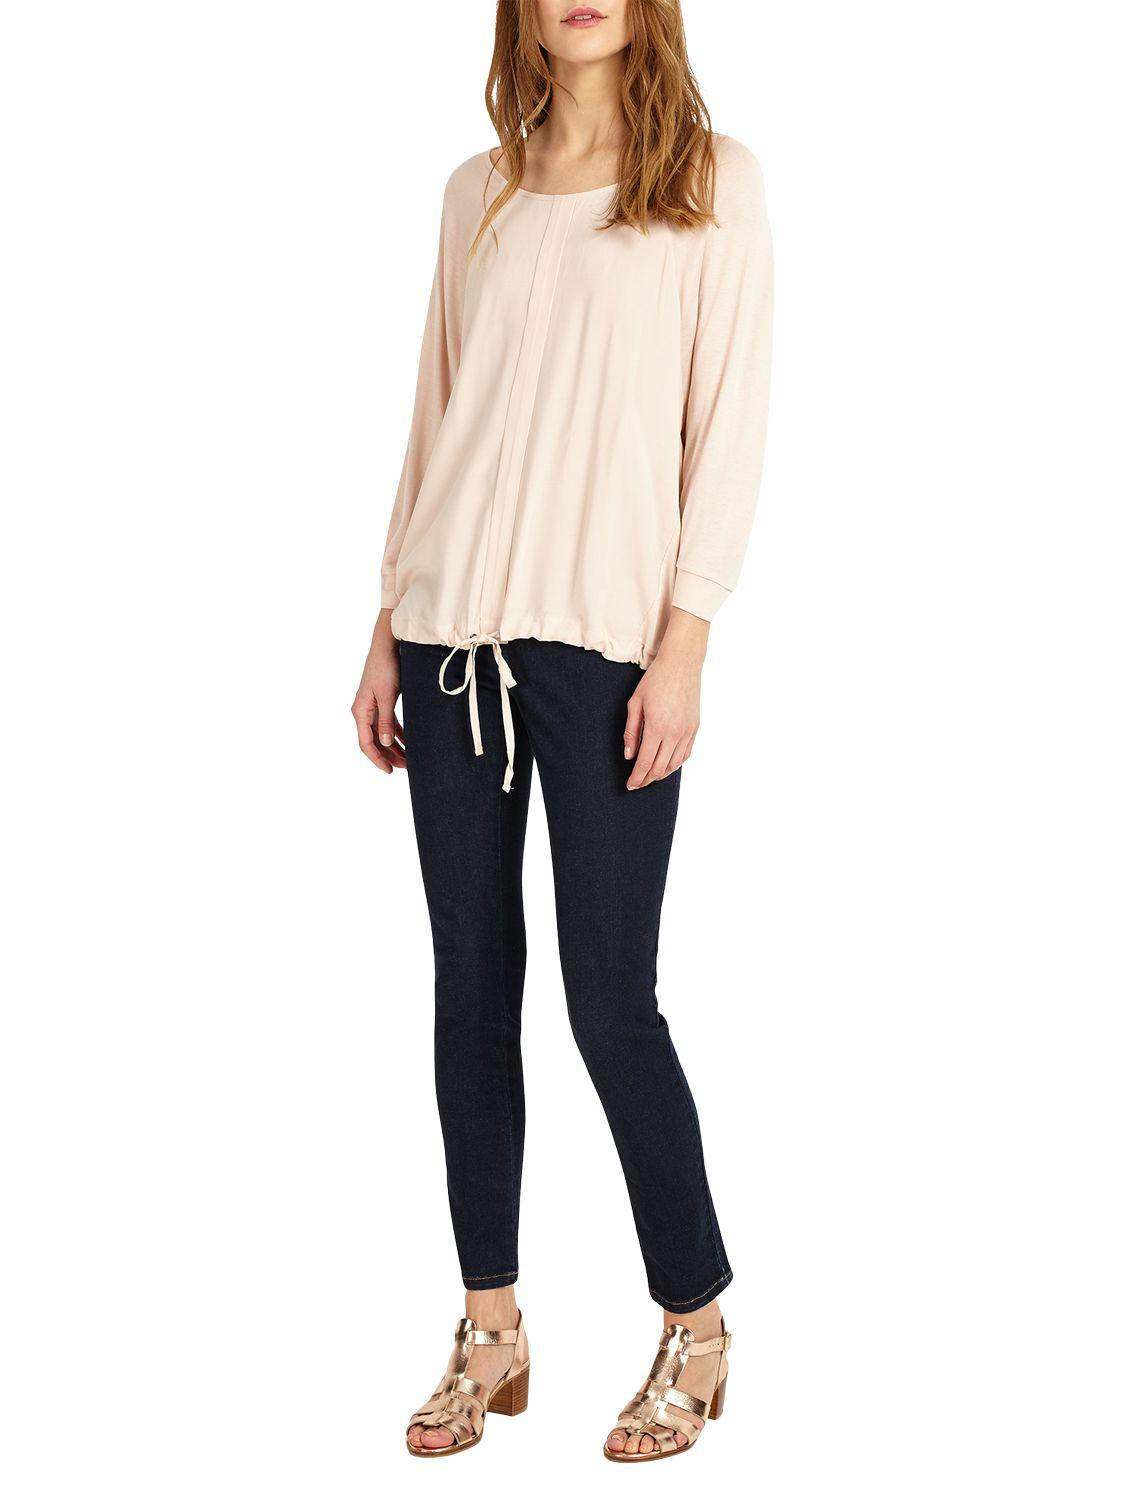 Phase Eight Denim Dion Drawstring Top in Dusty Pink (Pink)